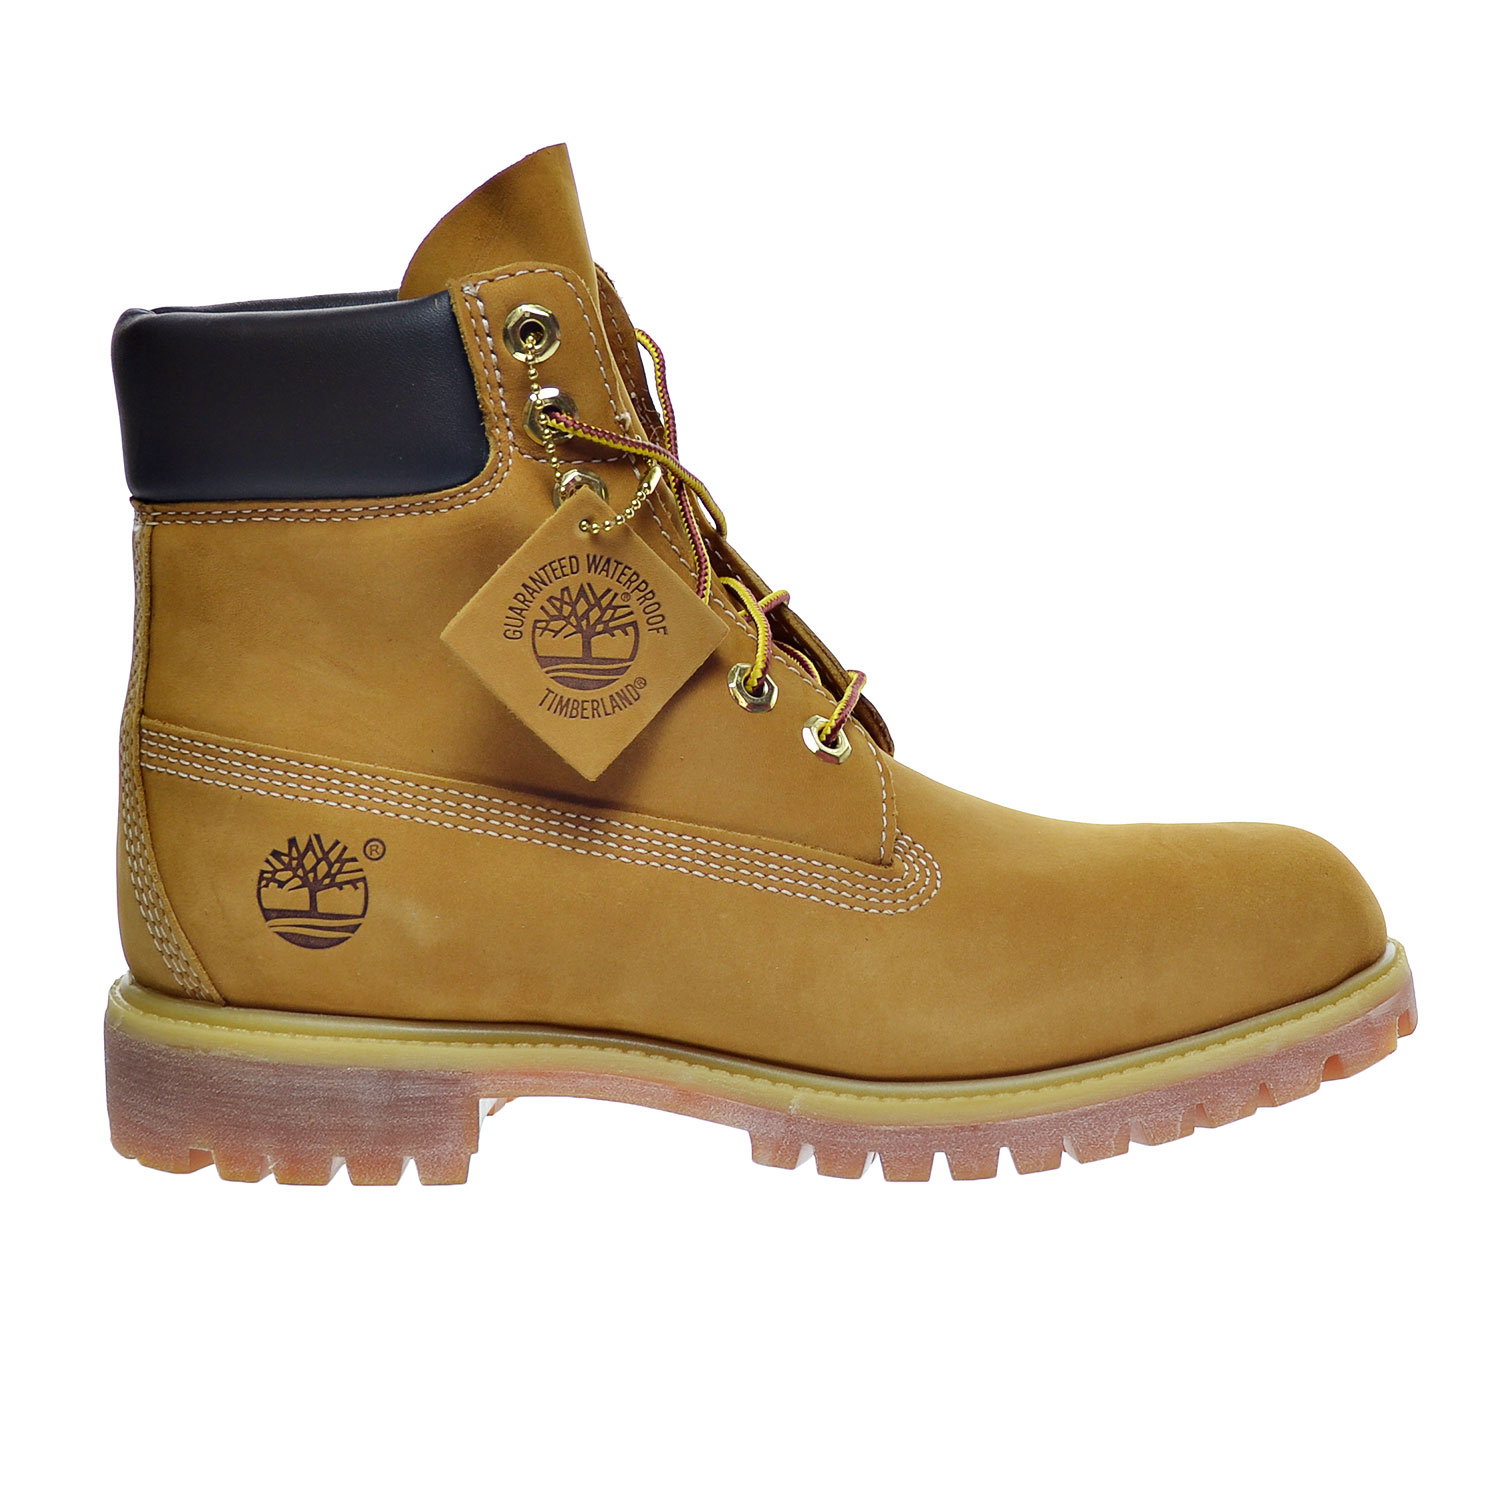 tratar con Pulido heroico  Timberland 6Inch (Wide Width) Premium Men's Waterproof Boots Wheat  tb010061w | eBay